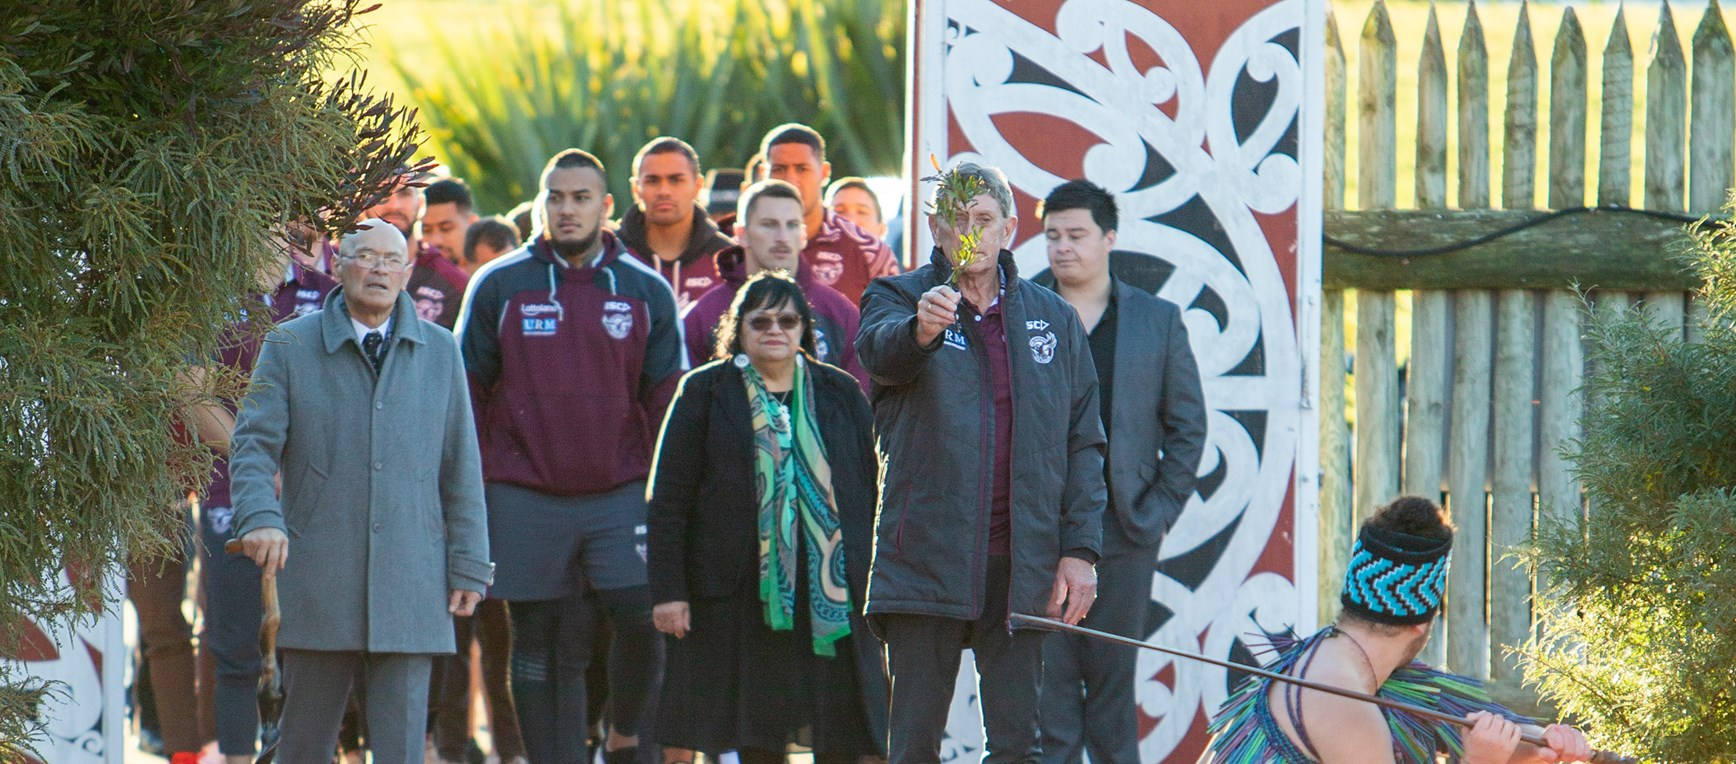 Manly receive warm welcome to Christchurch